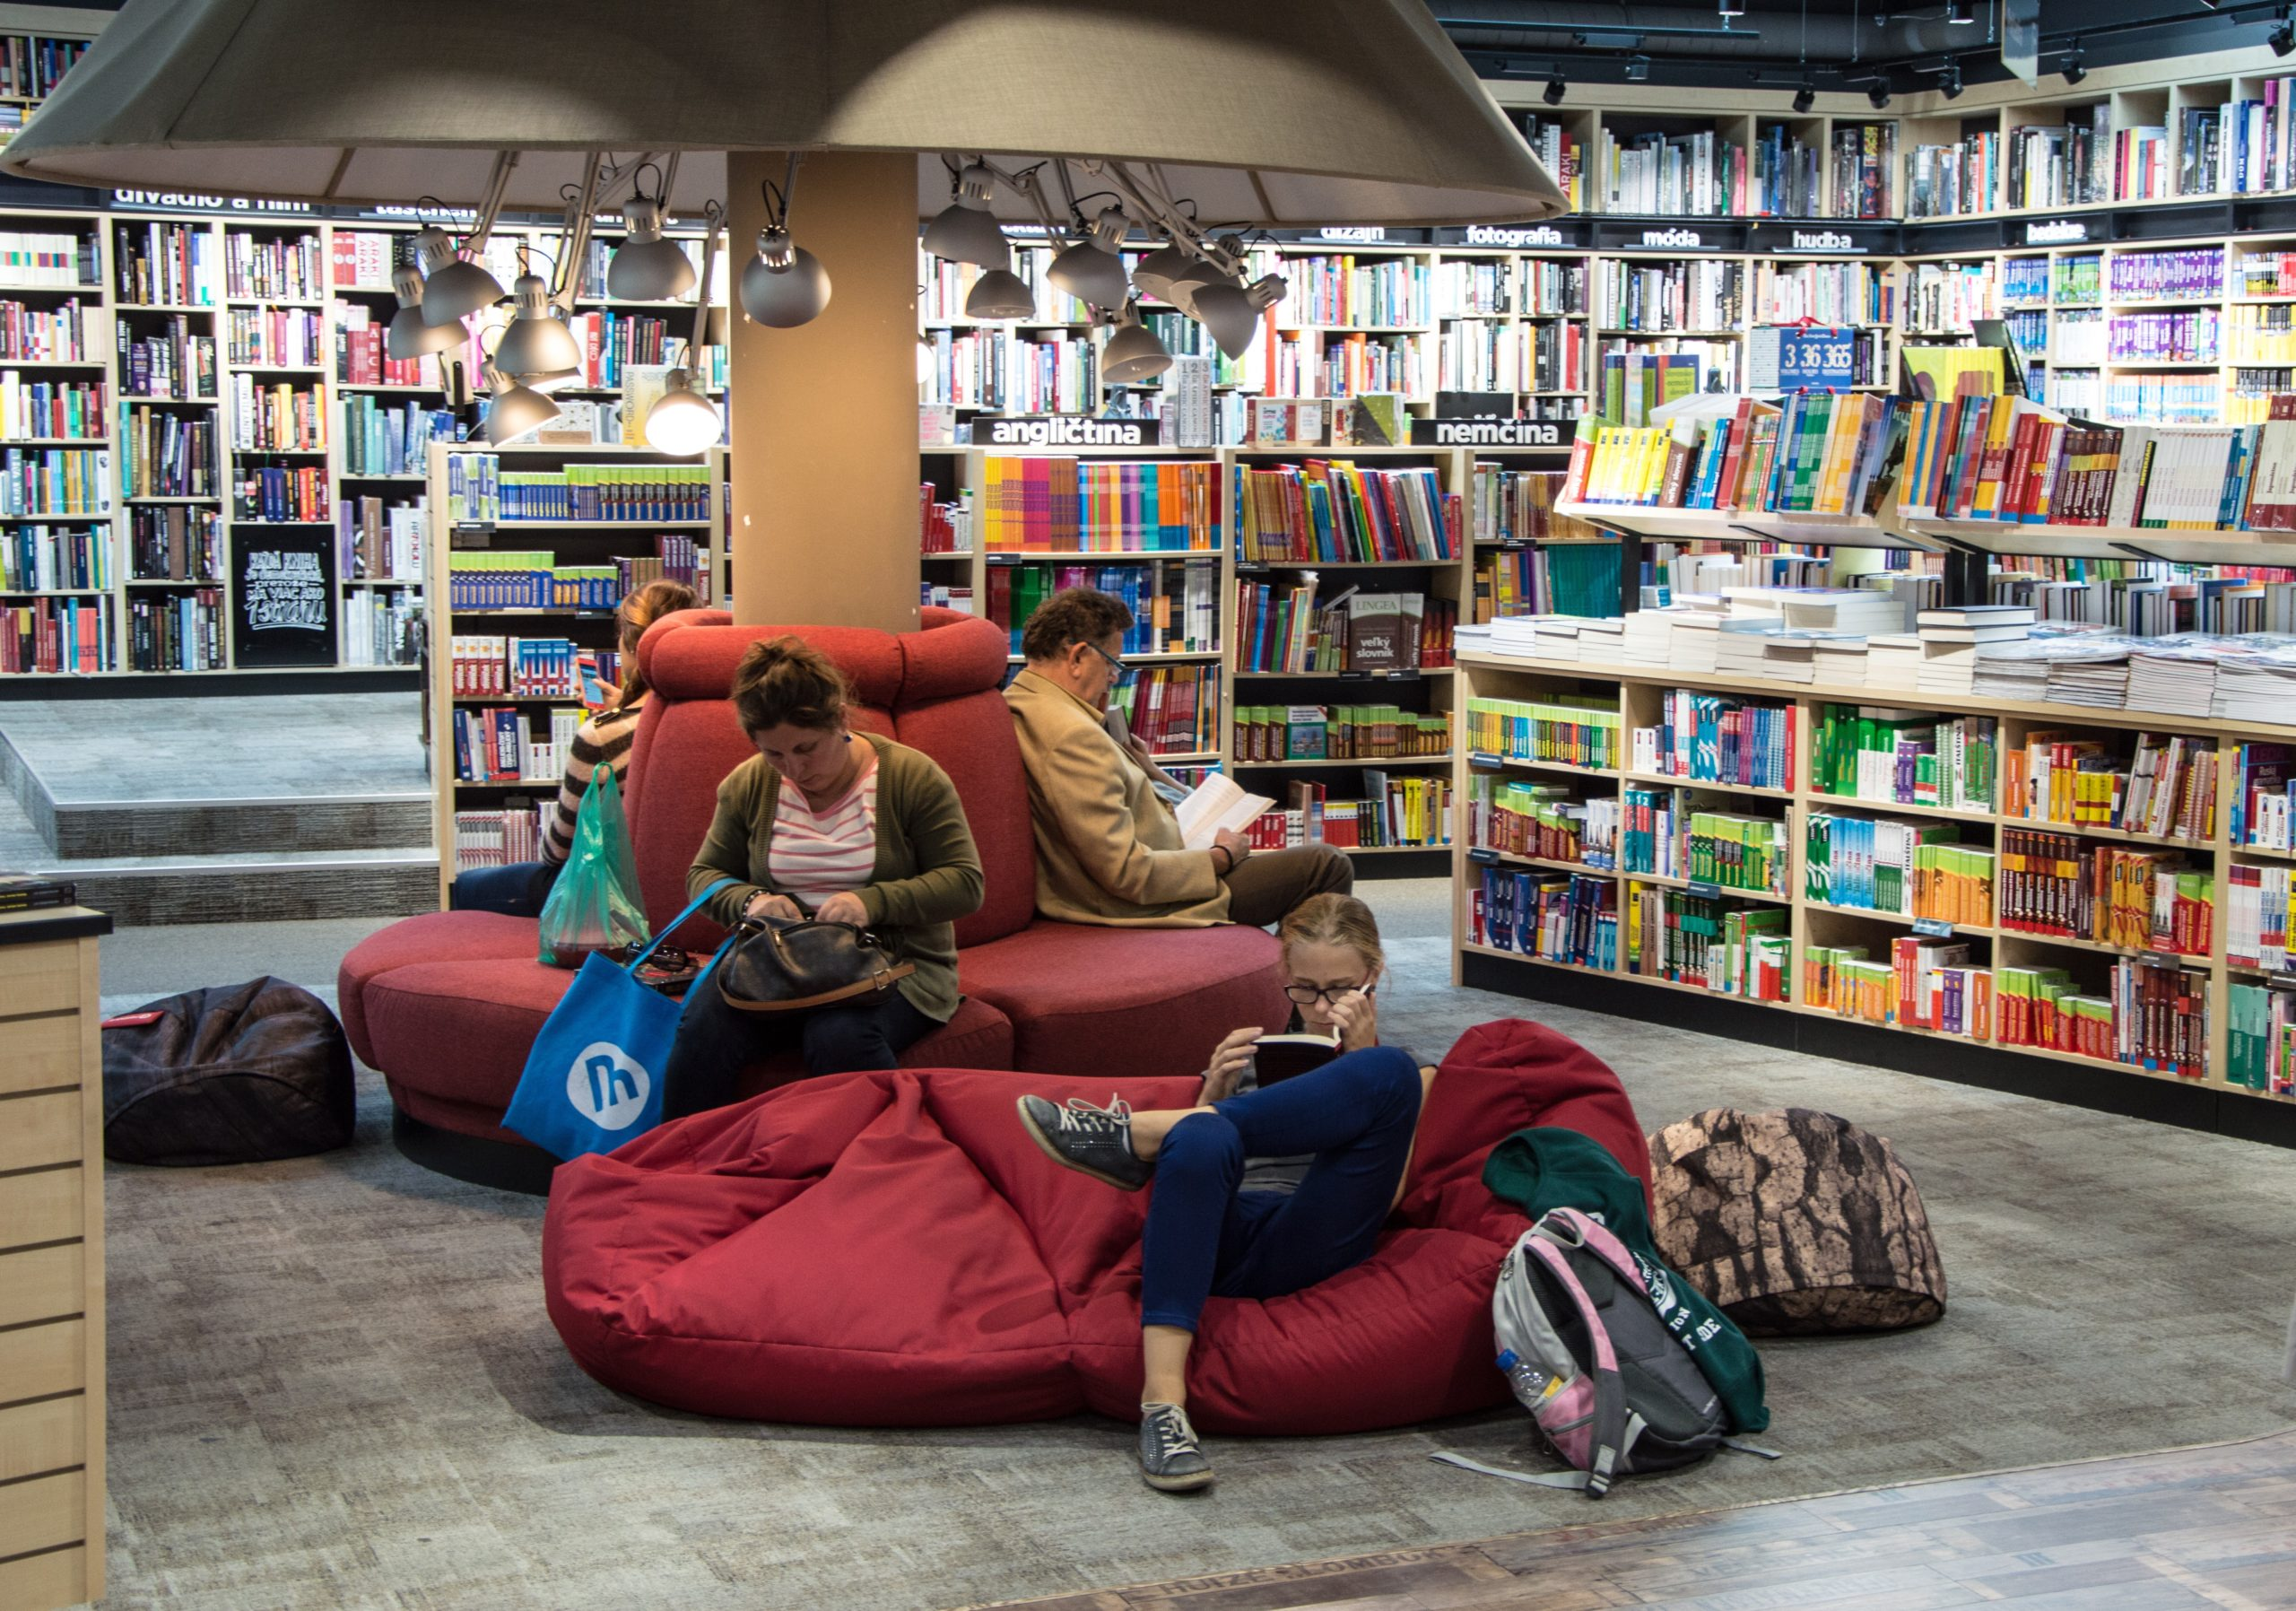 kids all in a library on bean bags